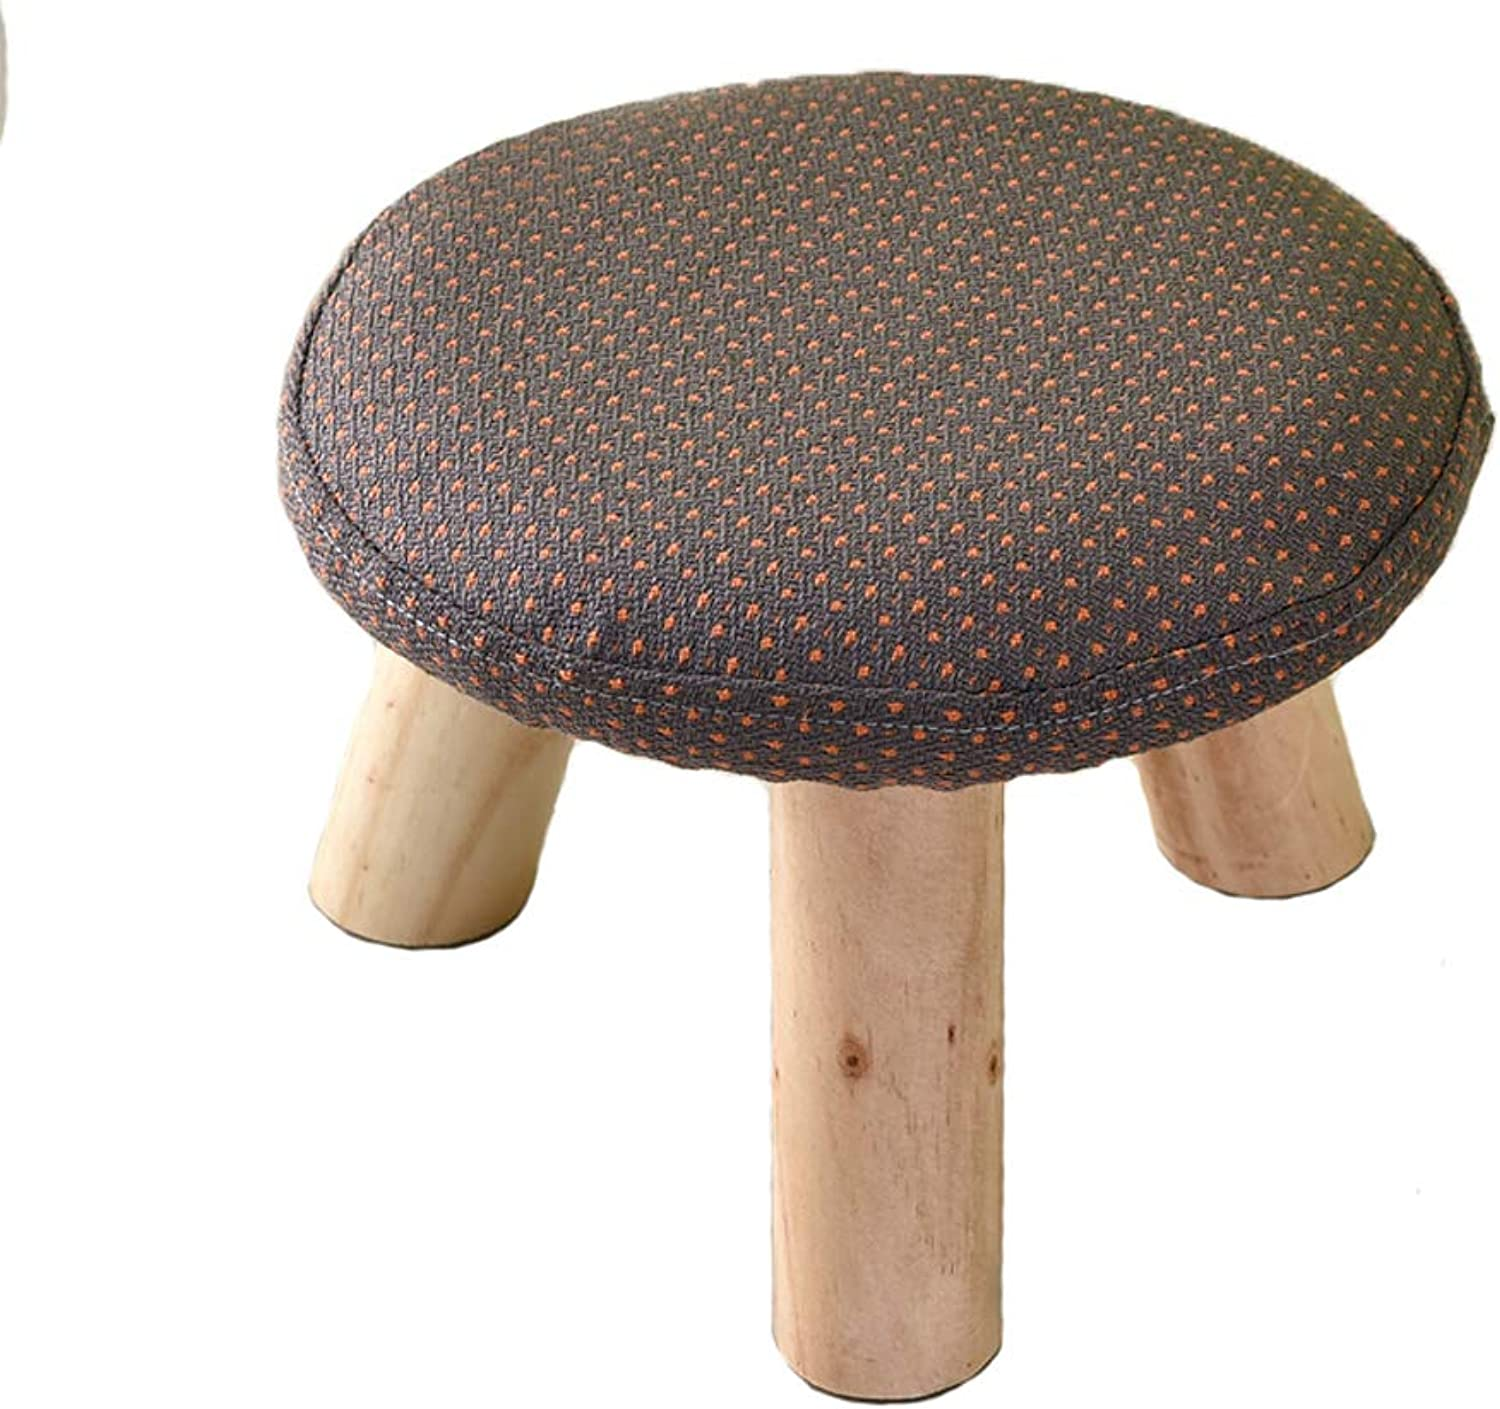 HLJ Modern Minimalist Small Round Stool Personality Fashion Home Small Bench Creative Adult Small Bench